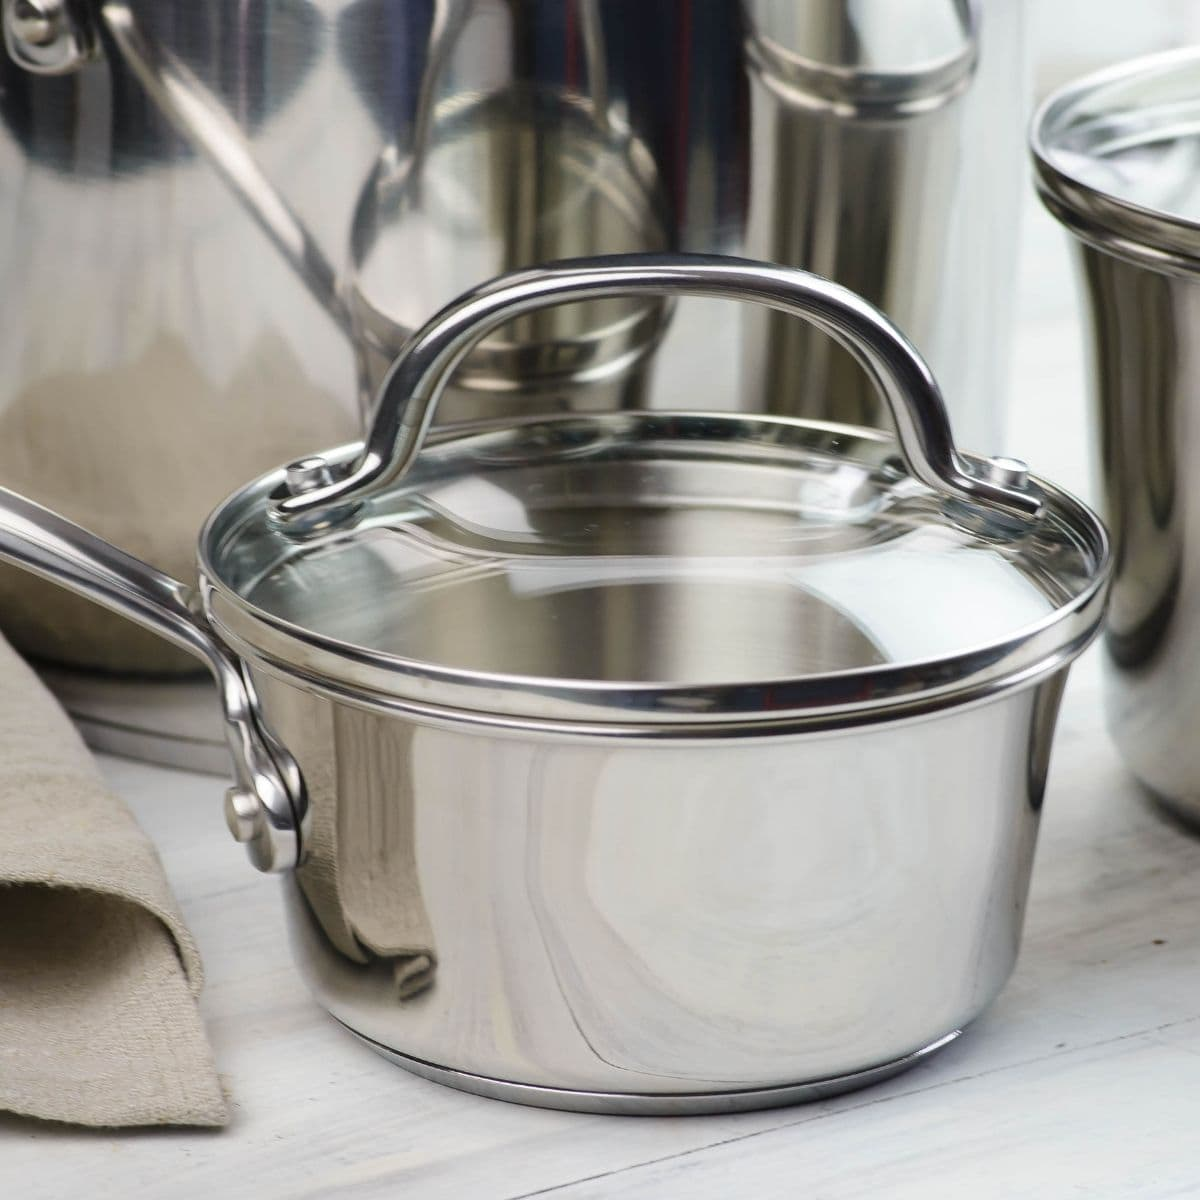 Small sauce pan with a lid.